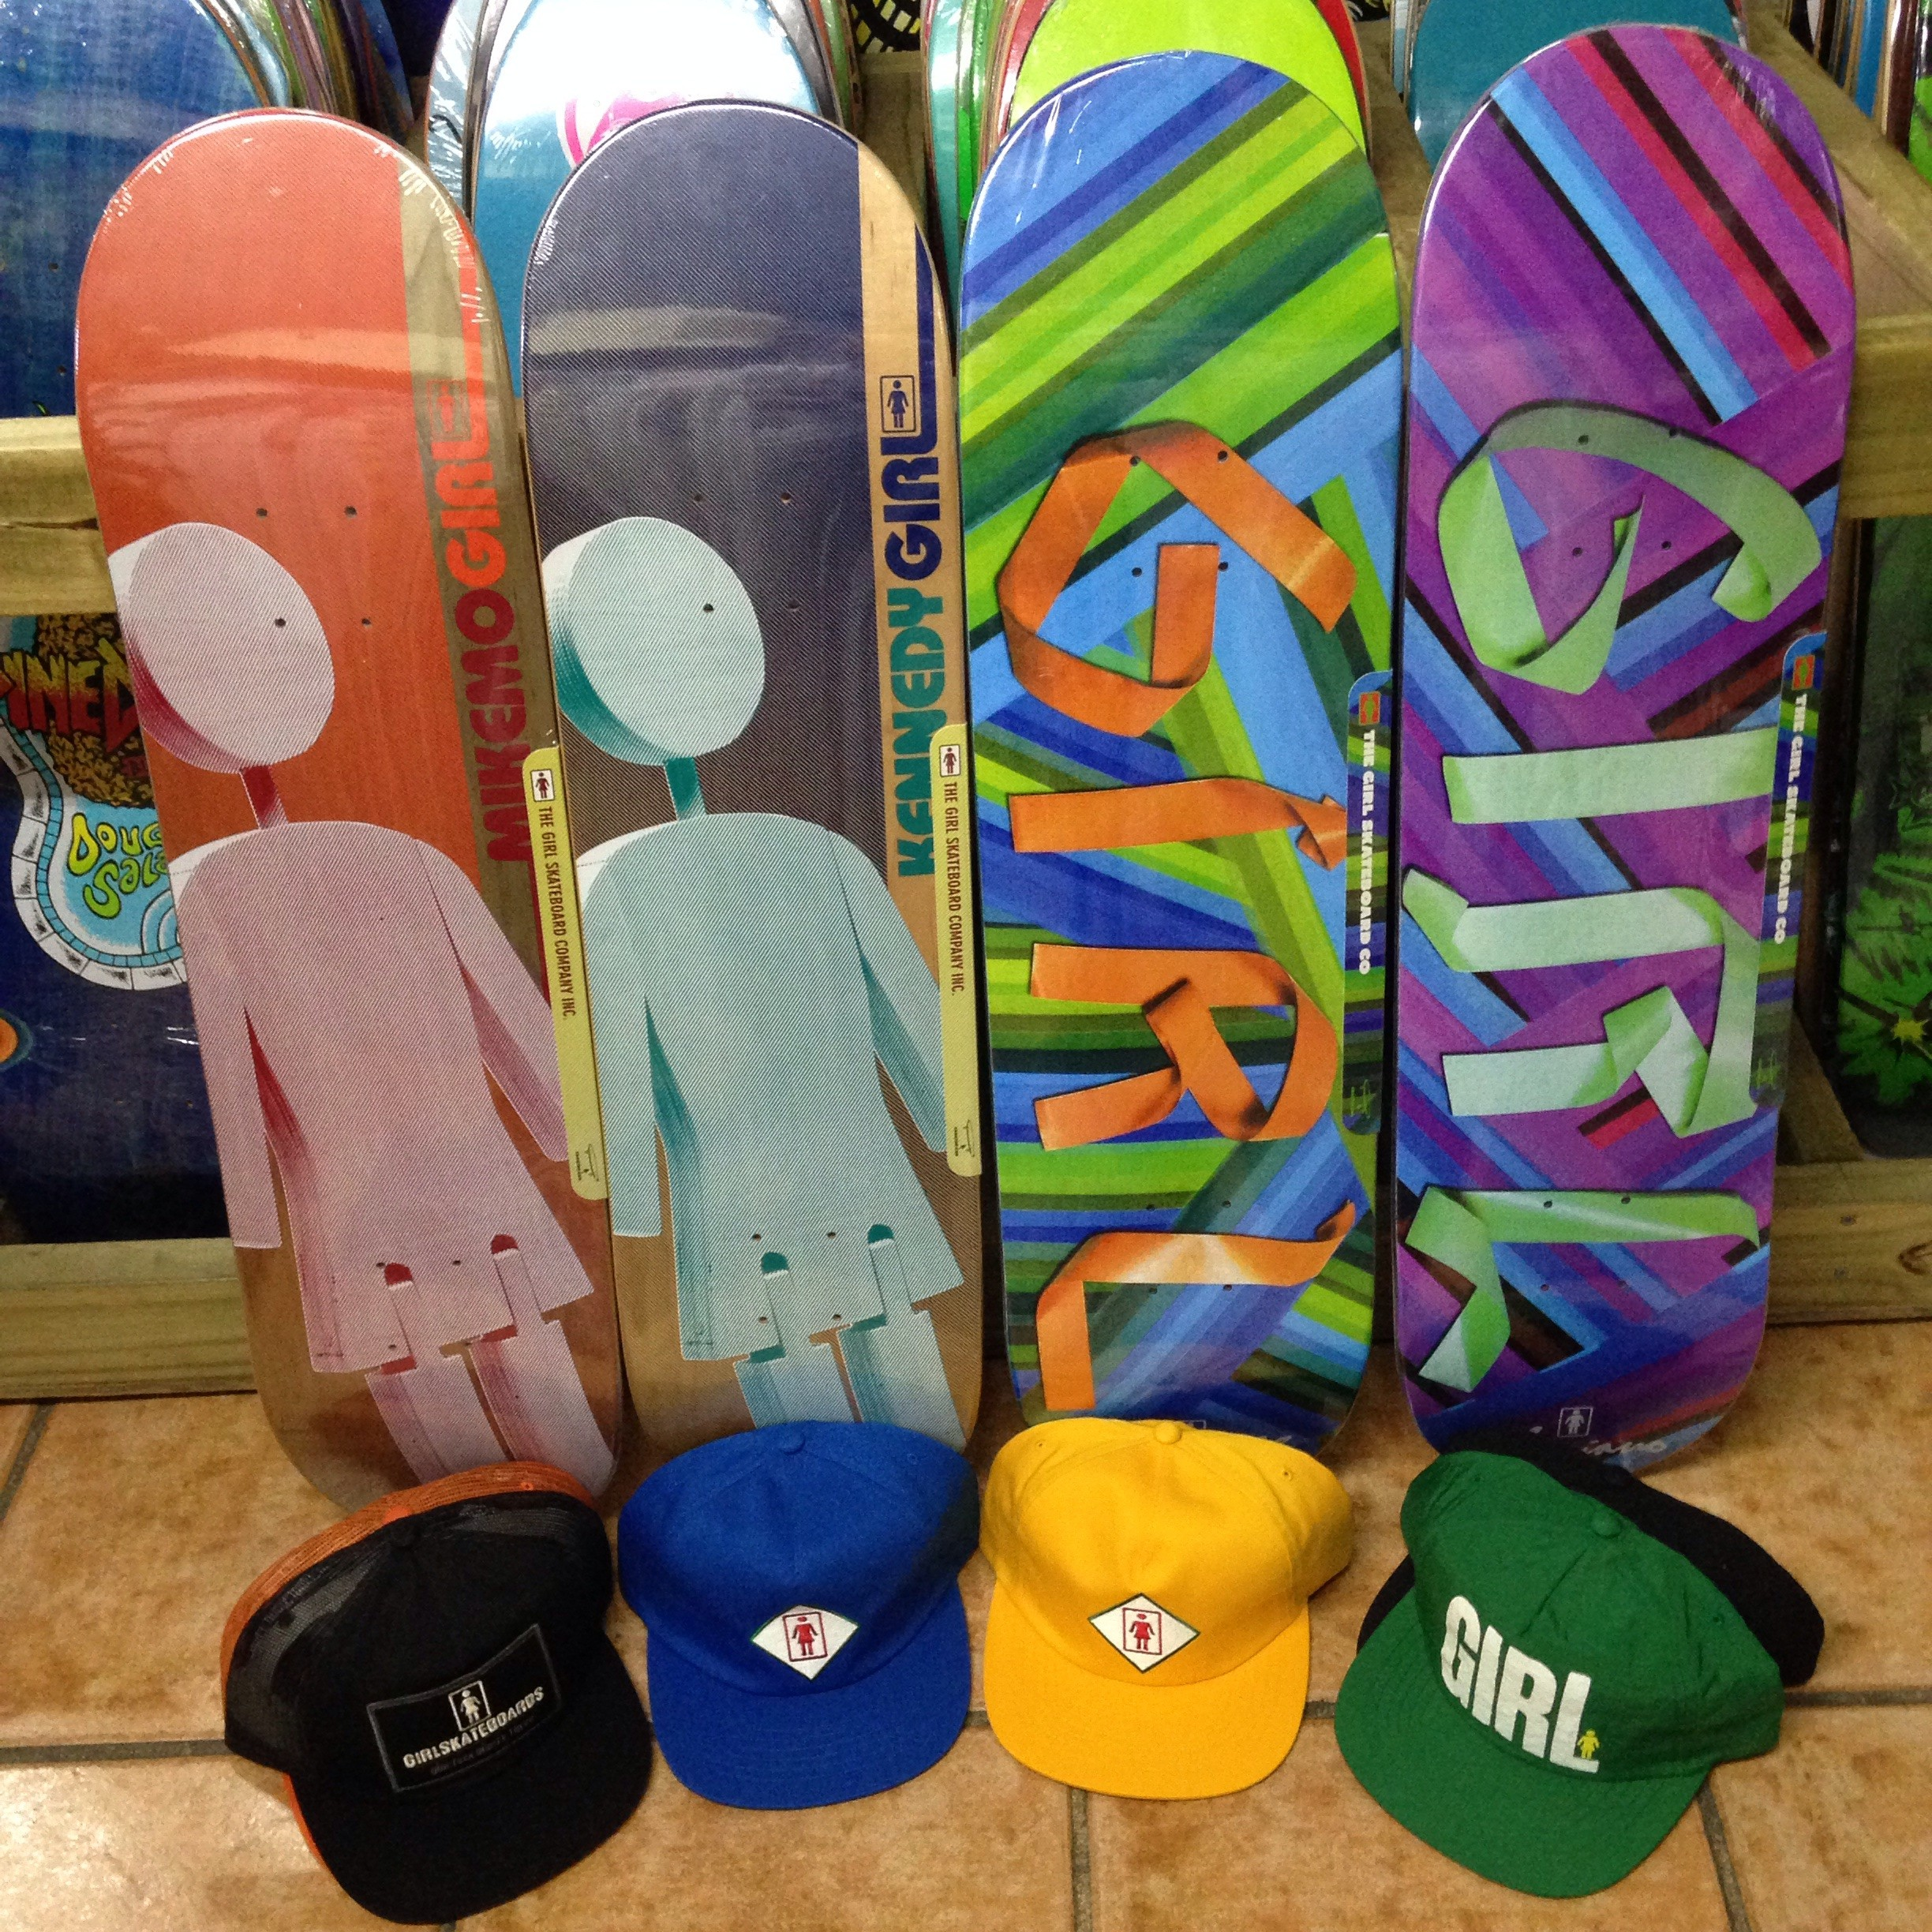 "Girl skateboards and hats! (8.0"" x 31.875"" 14.25"" wb, 8.0"" x31.5"" 14""wb, 8.25"" x 31.625"" 14"" wb, 8.0"" x 31.875"" 14.25"" wb)"